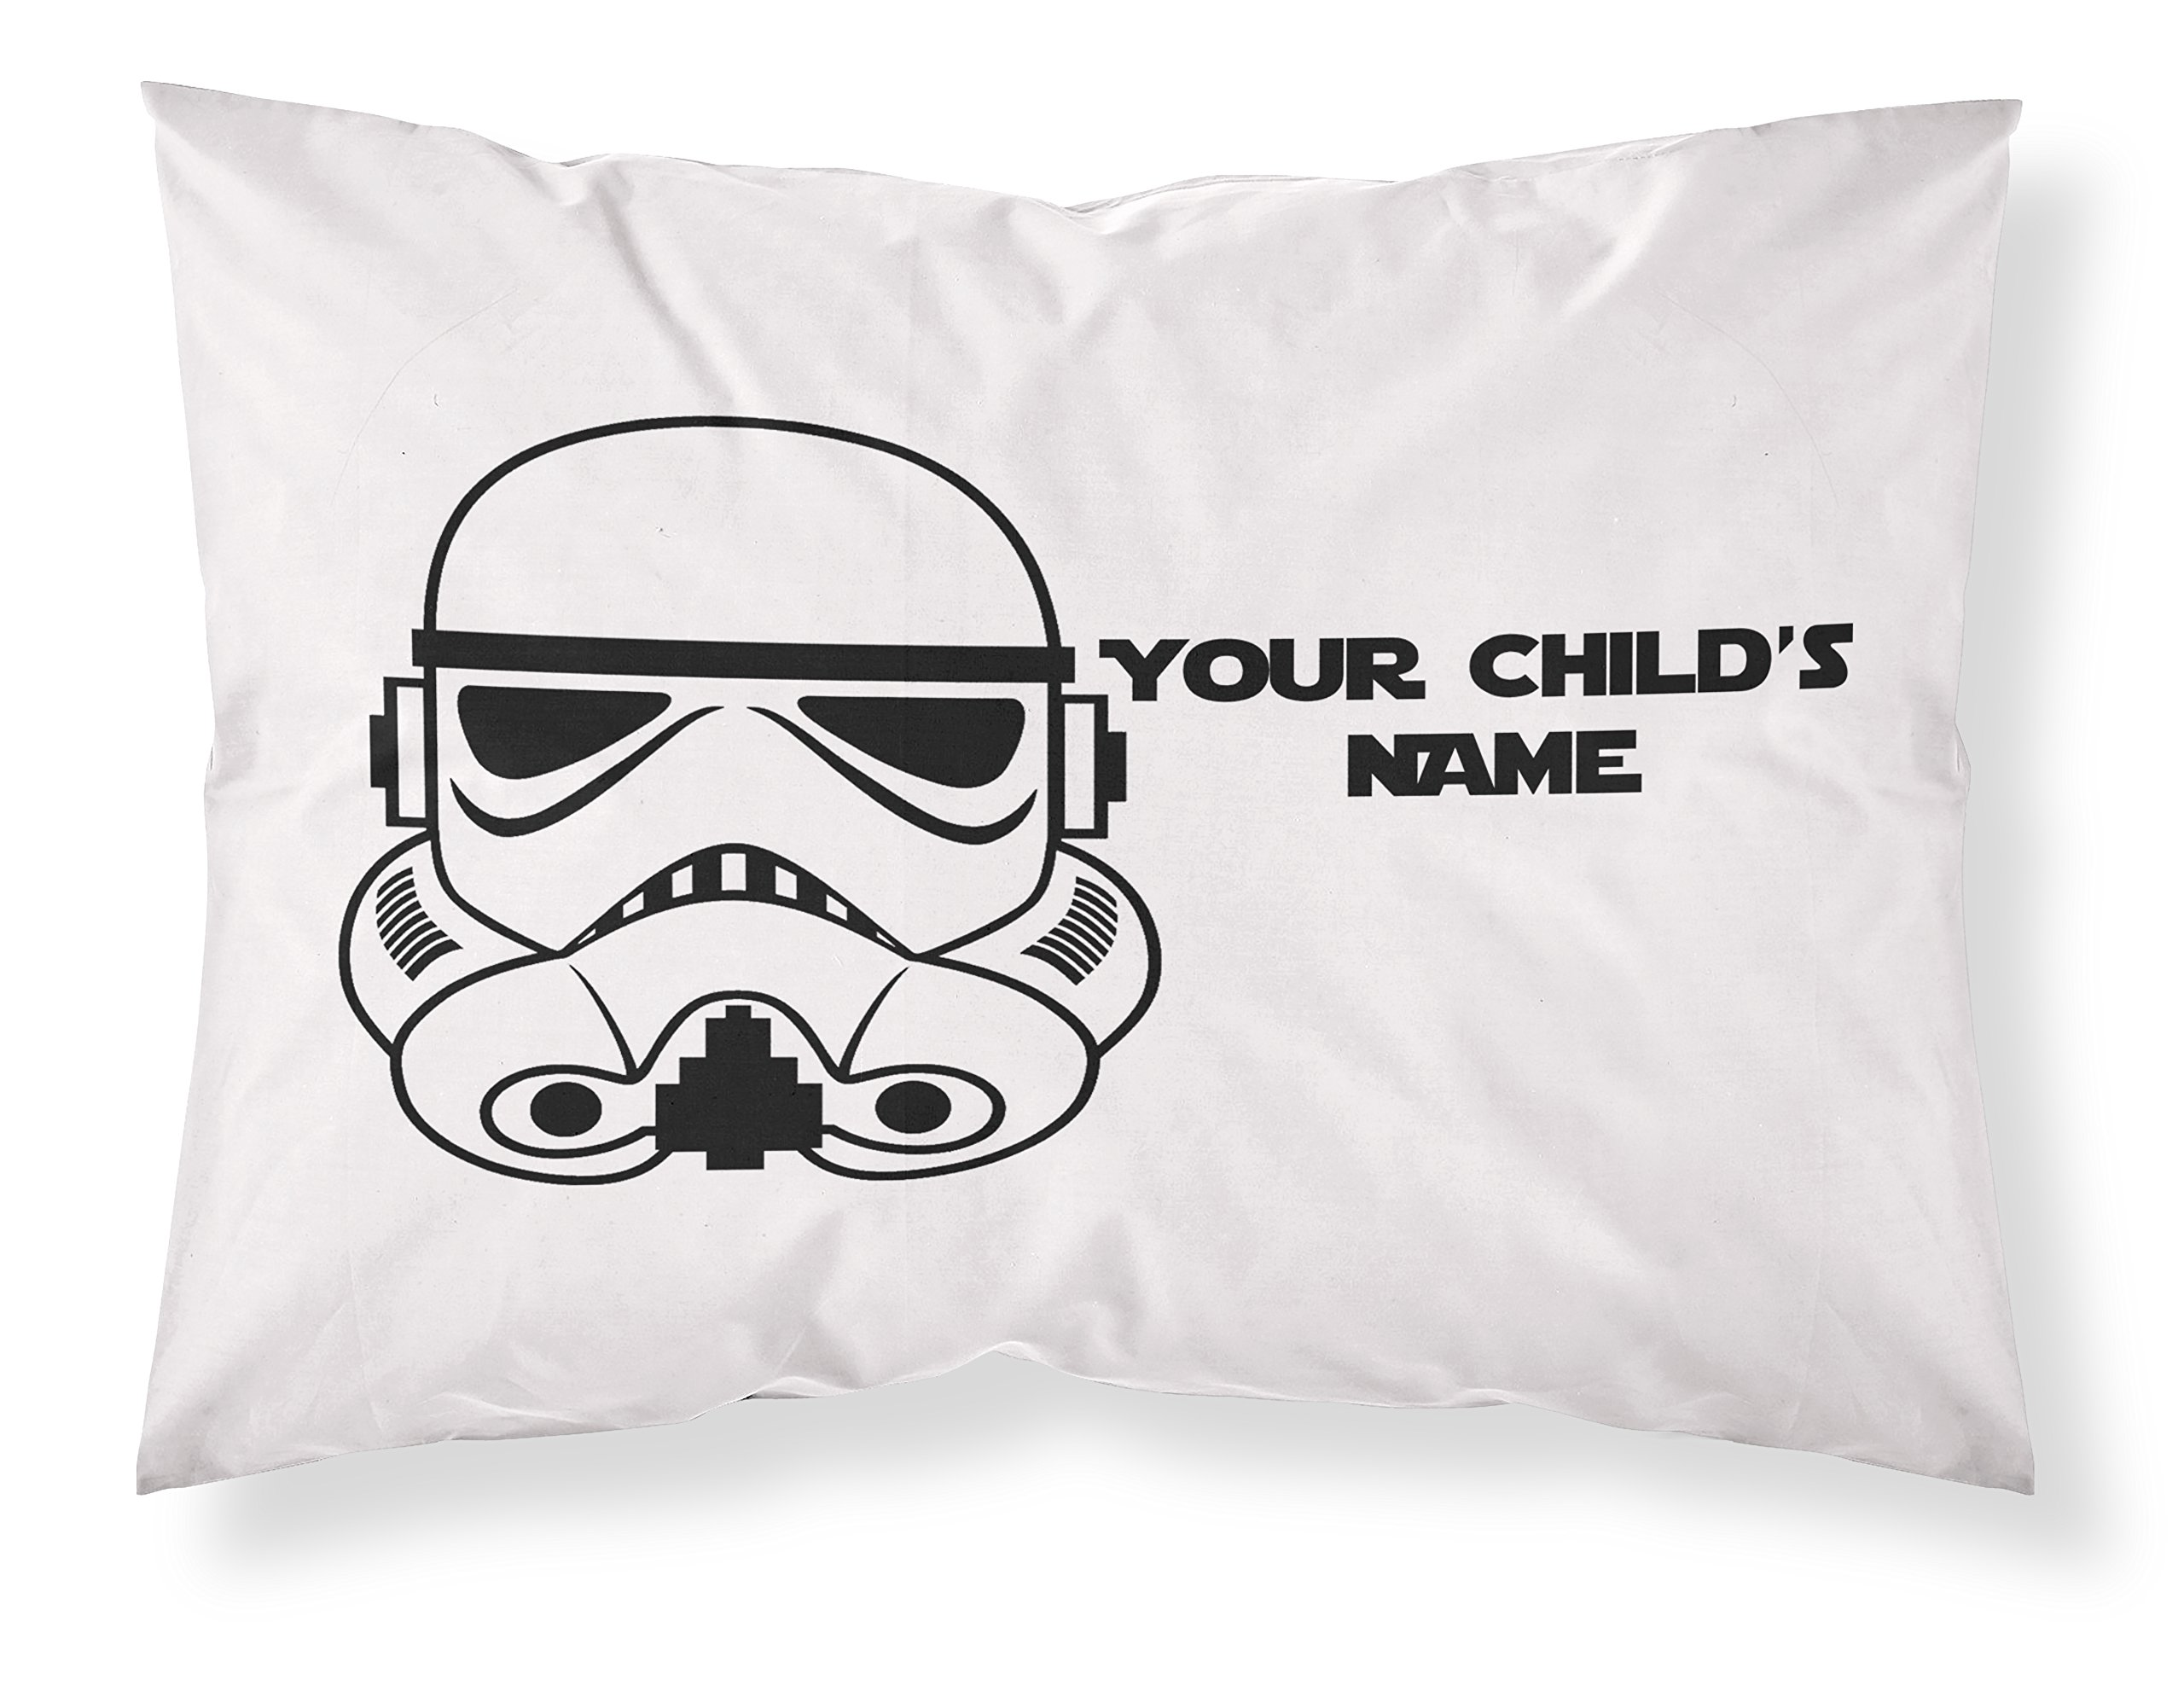 Customizable, StarWars Themed Pillowcase, Featuring A Stormtrooper! Personalized With Your Child's Name - Perfect Gift For Boys Of All Ages!